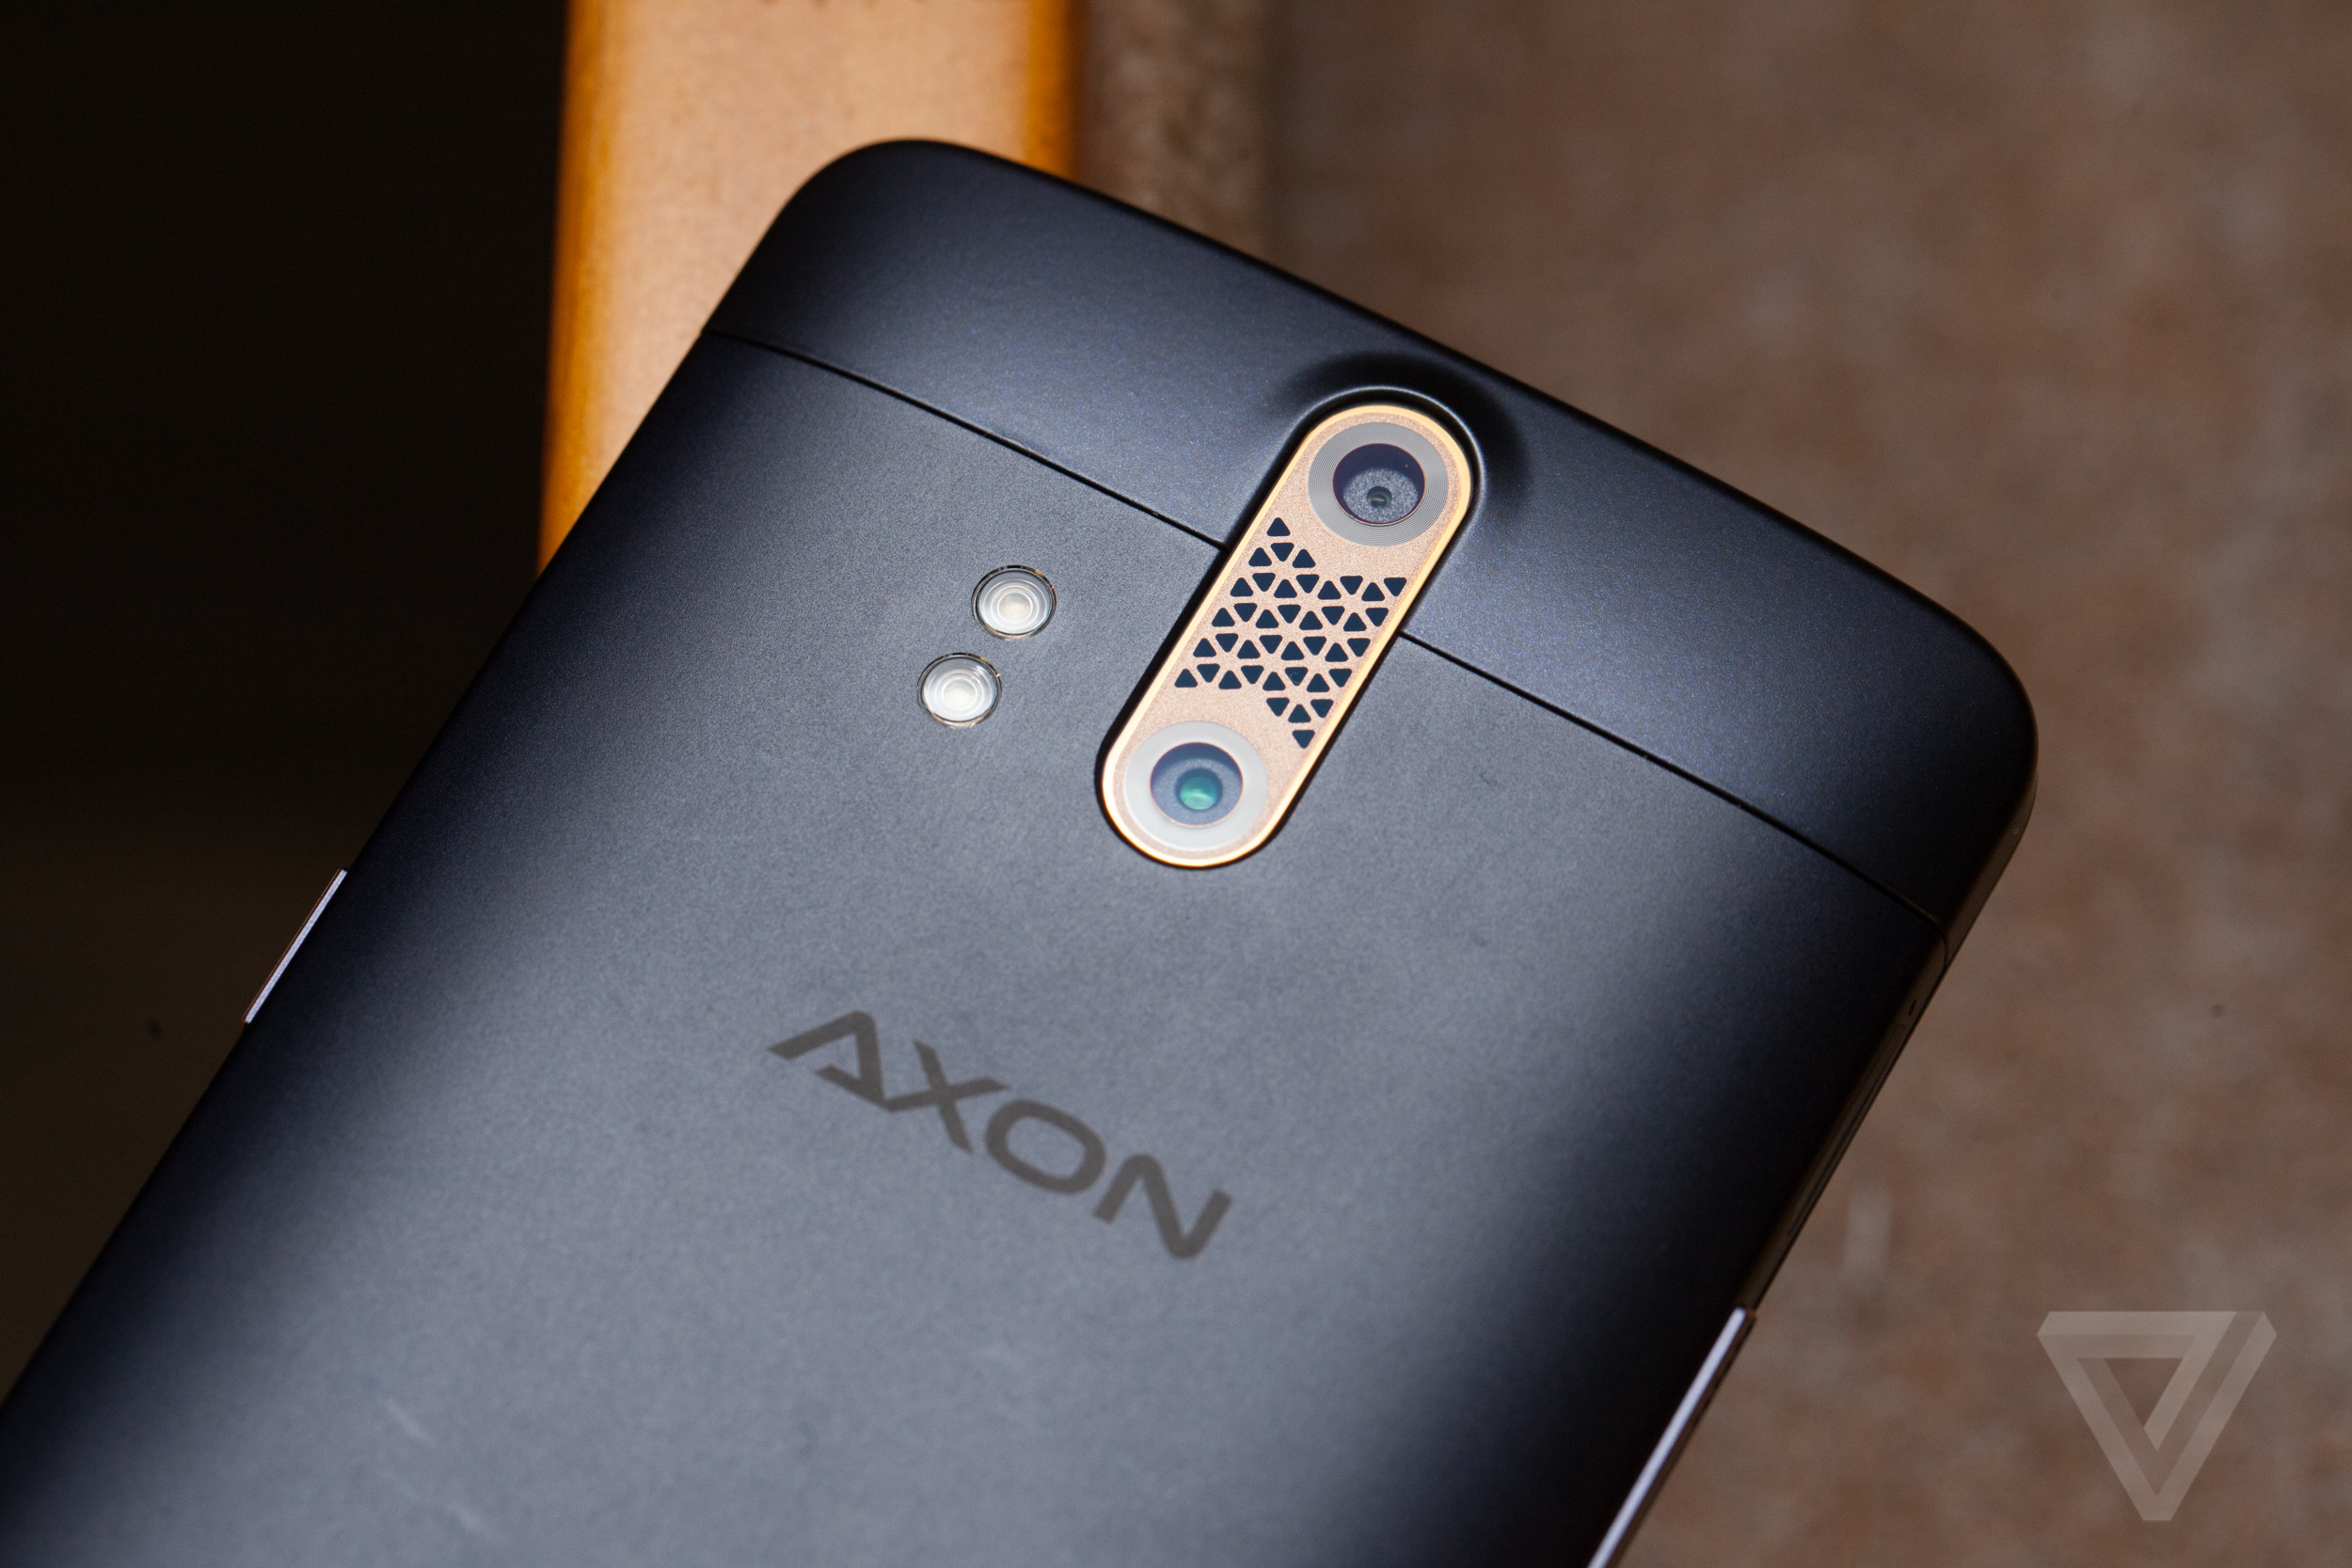 store zte axon pro camera review OnePlus